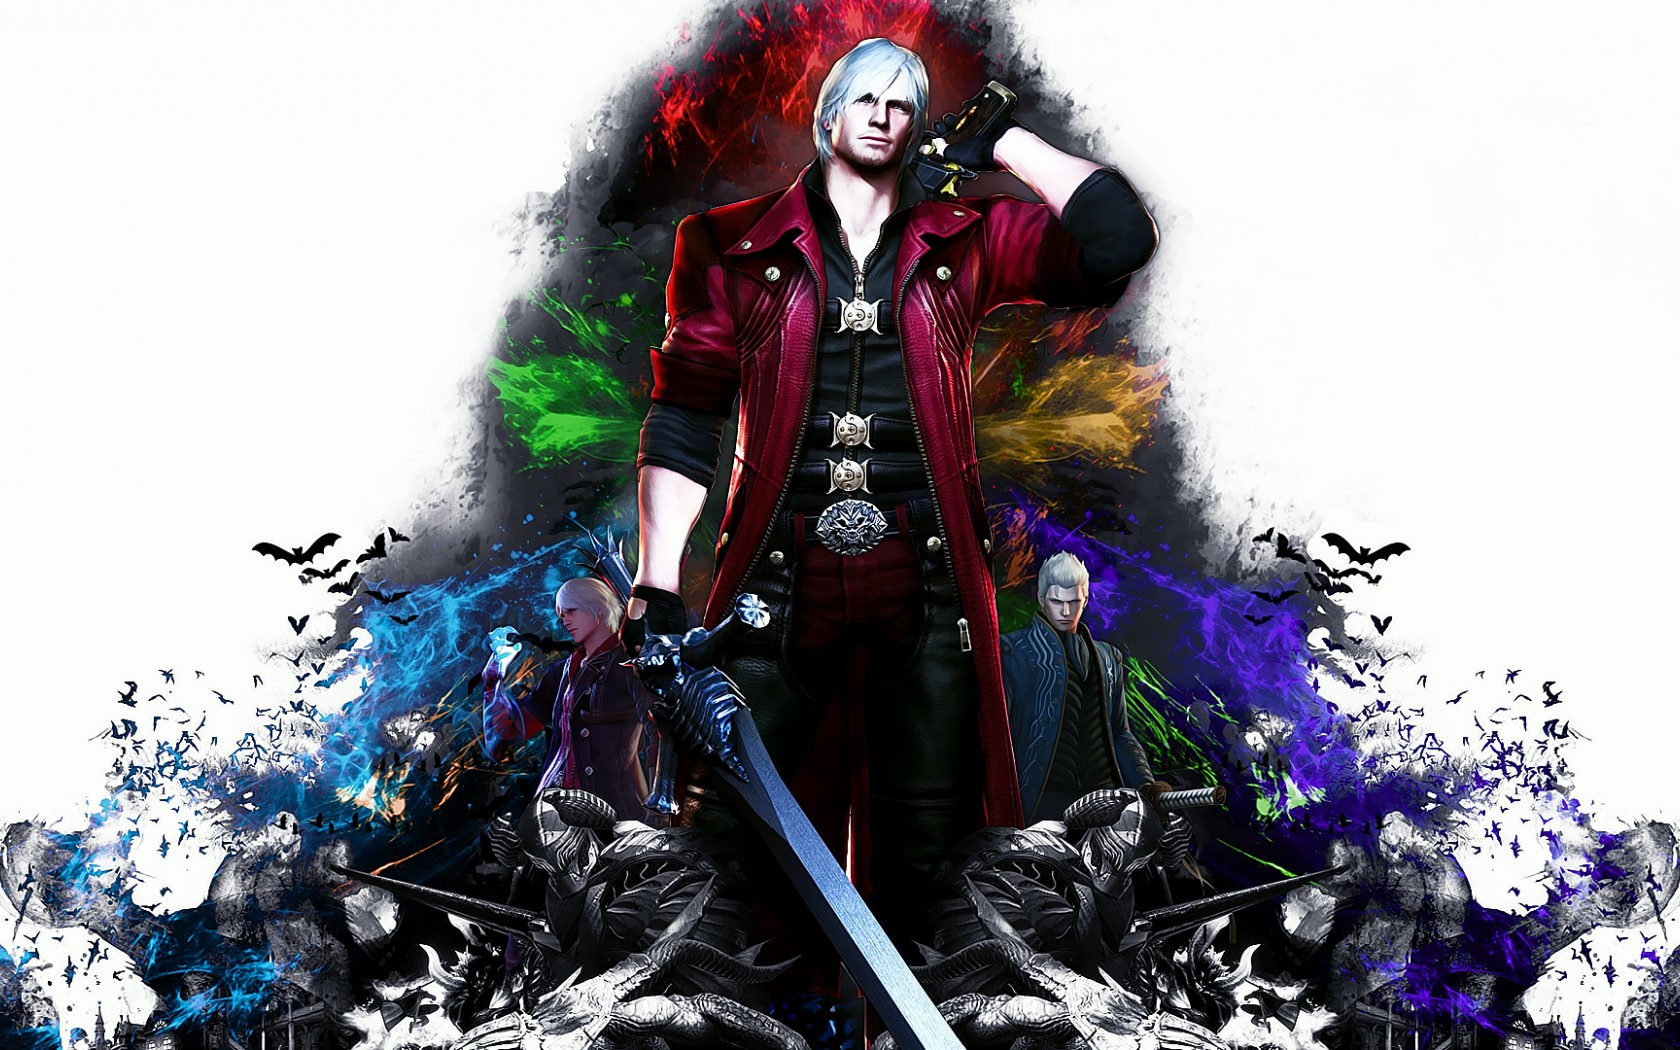 Devil May Cry 4 Special Edition Dante Wallpaper Hd Games 4k